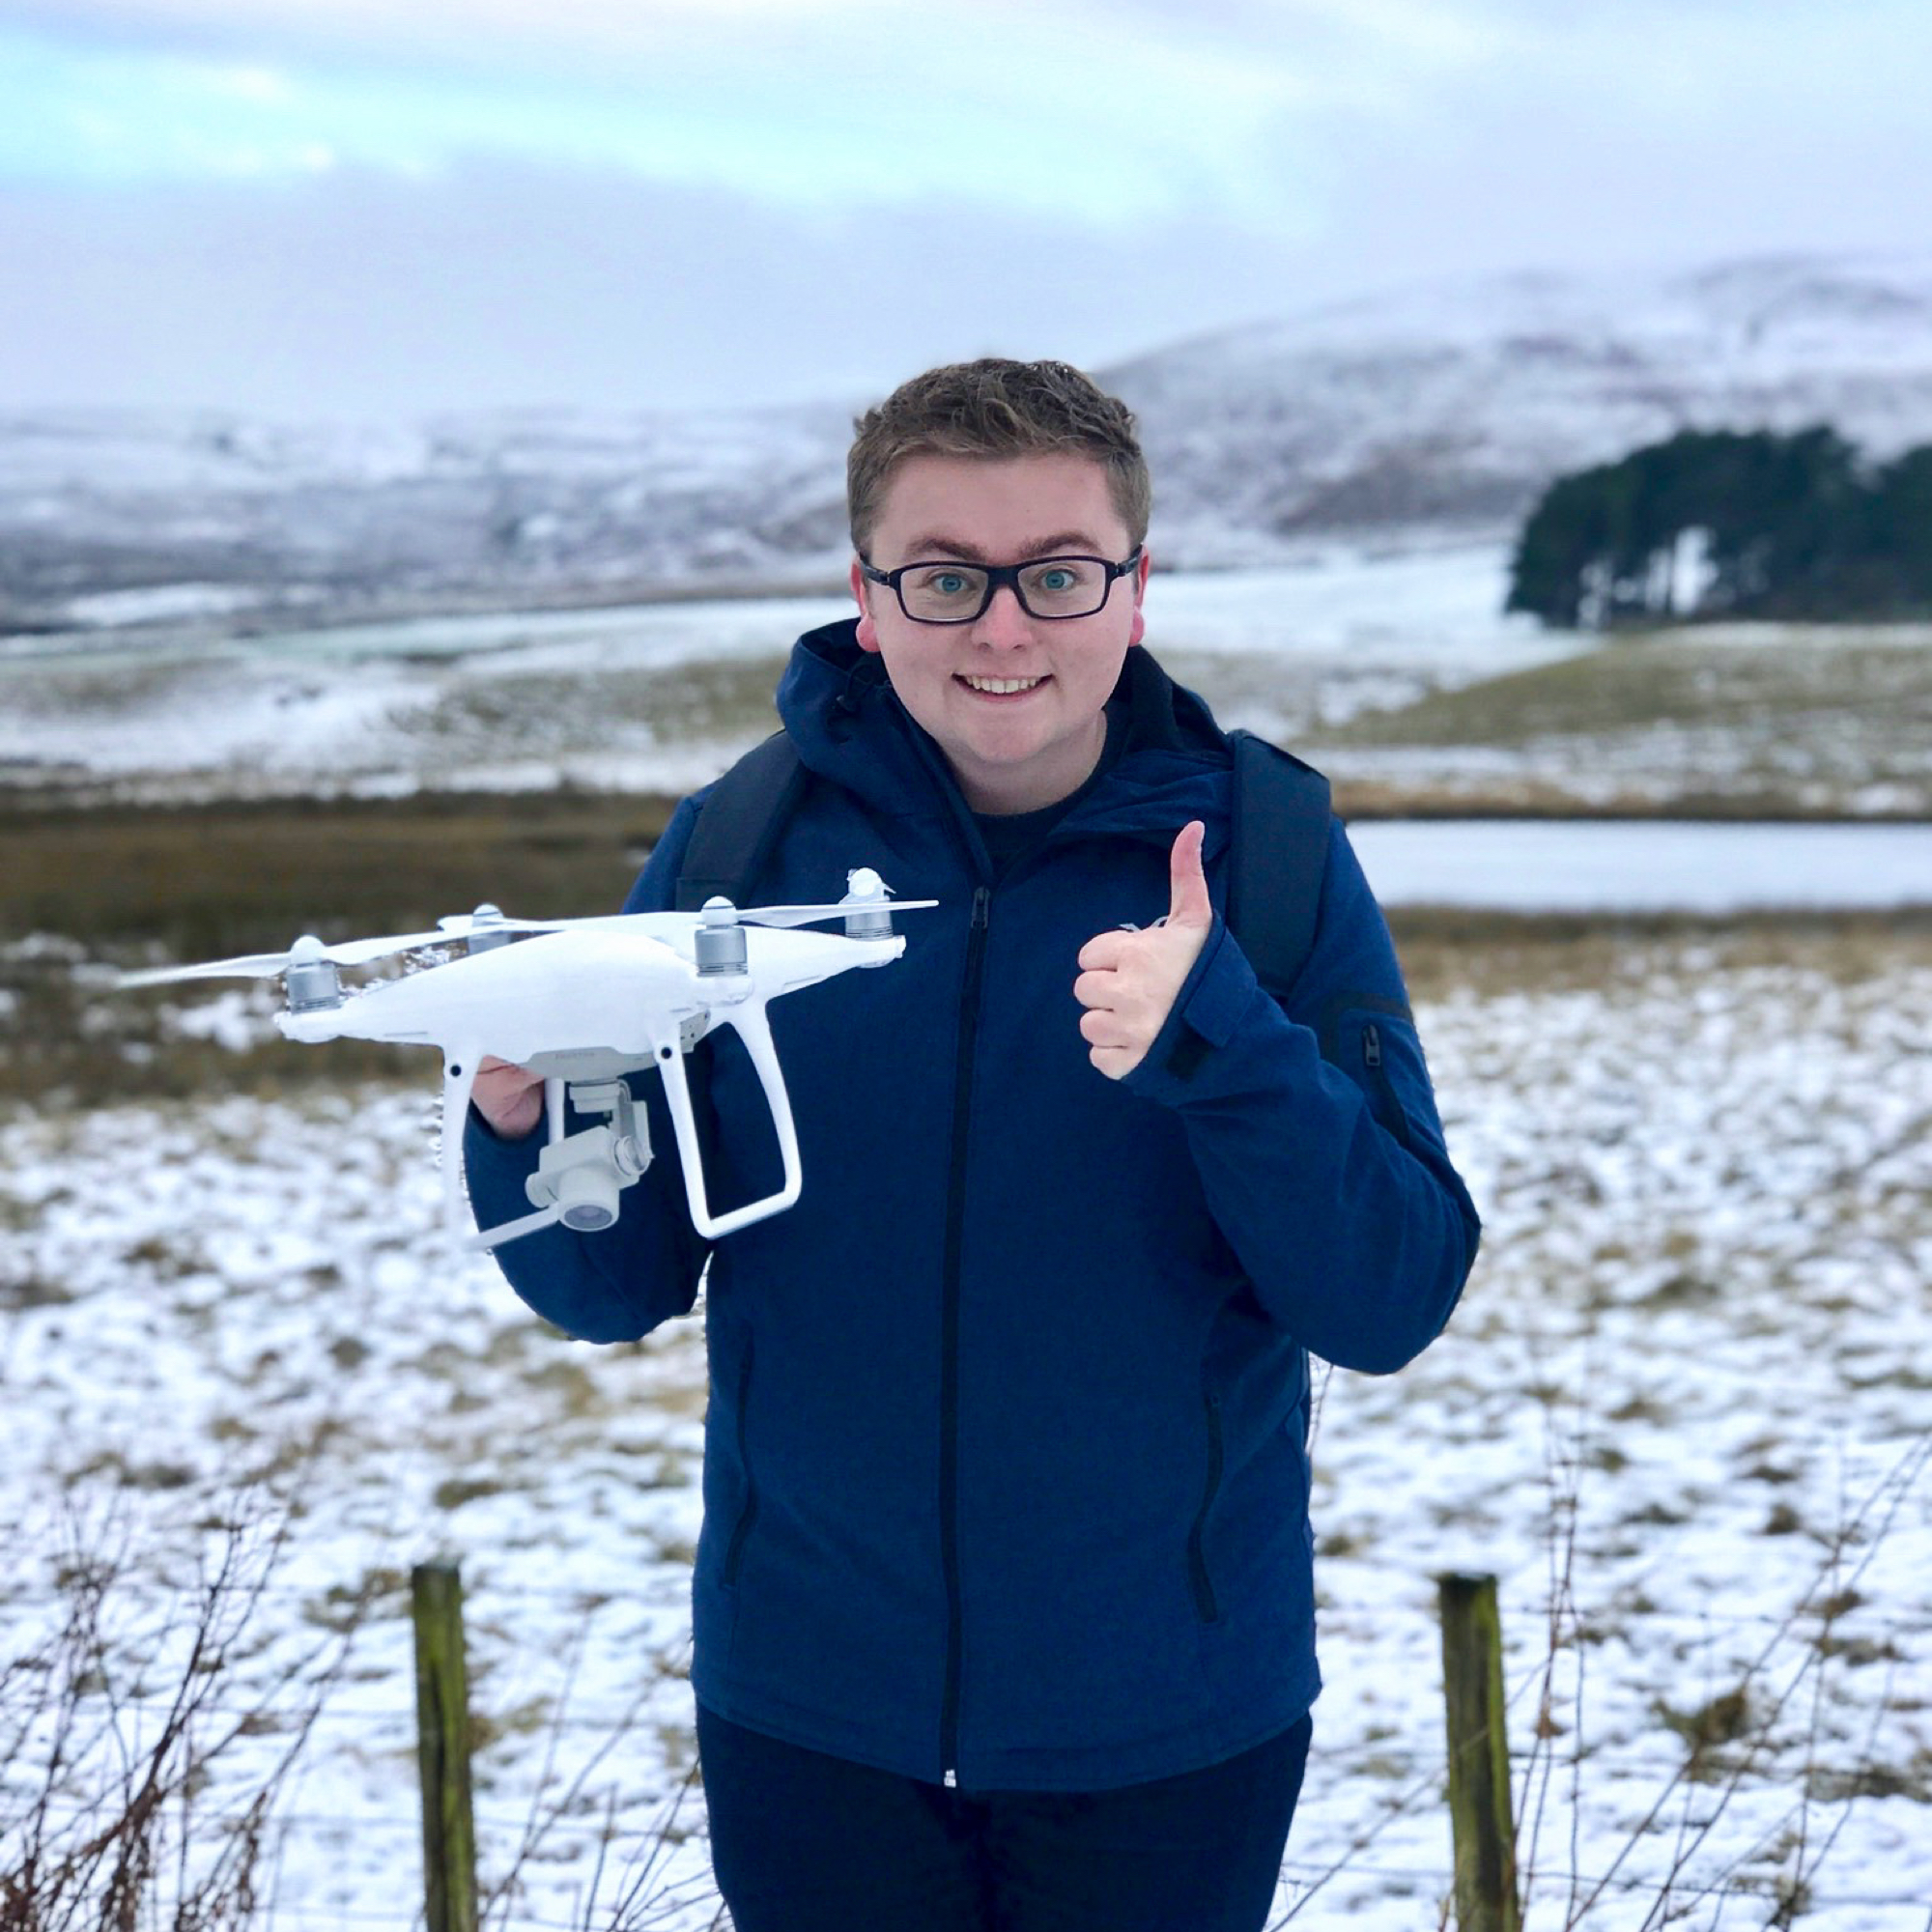 Jack Watkins trying out a drone in the snow